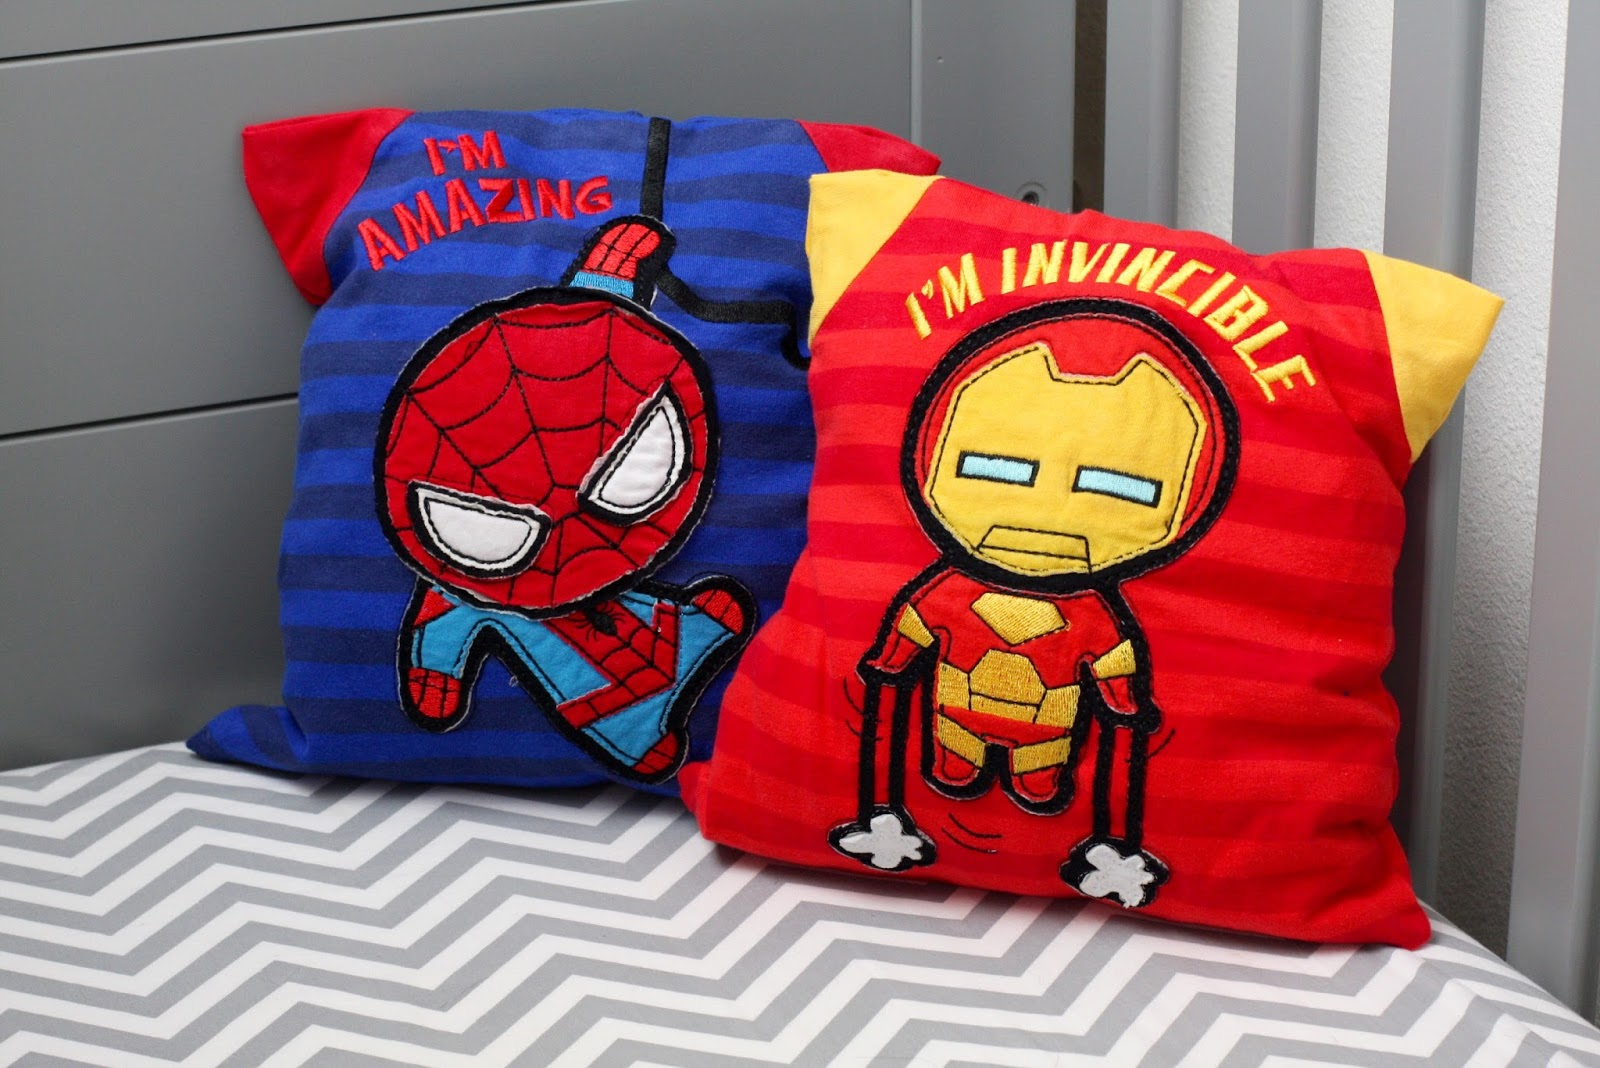 Geek Diy Bam Marvel Kawaii Baby Infant Onesie Into